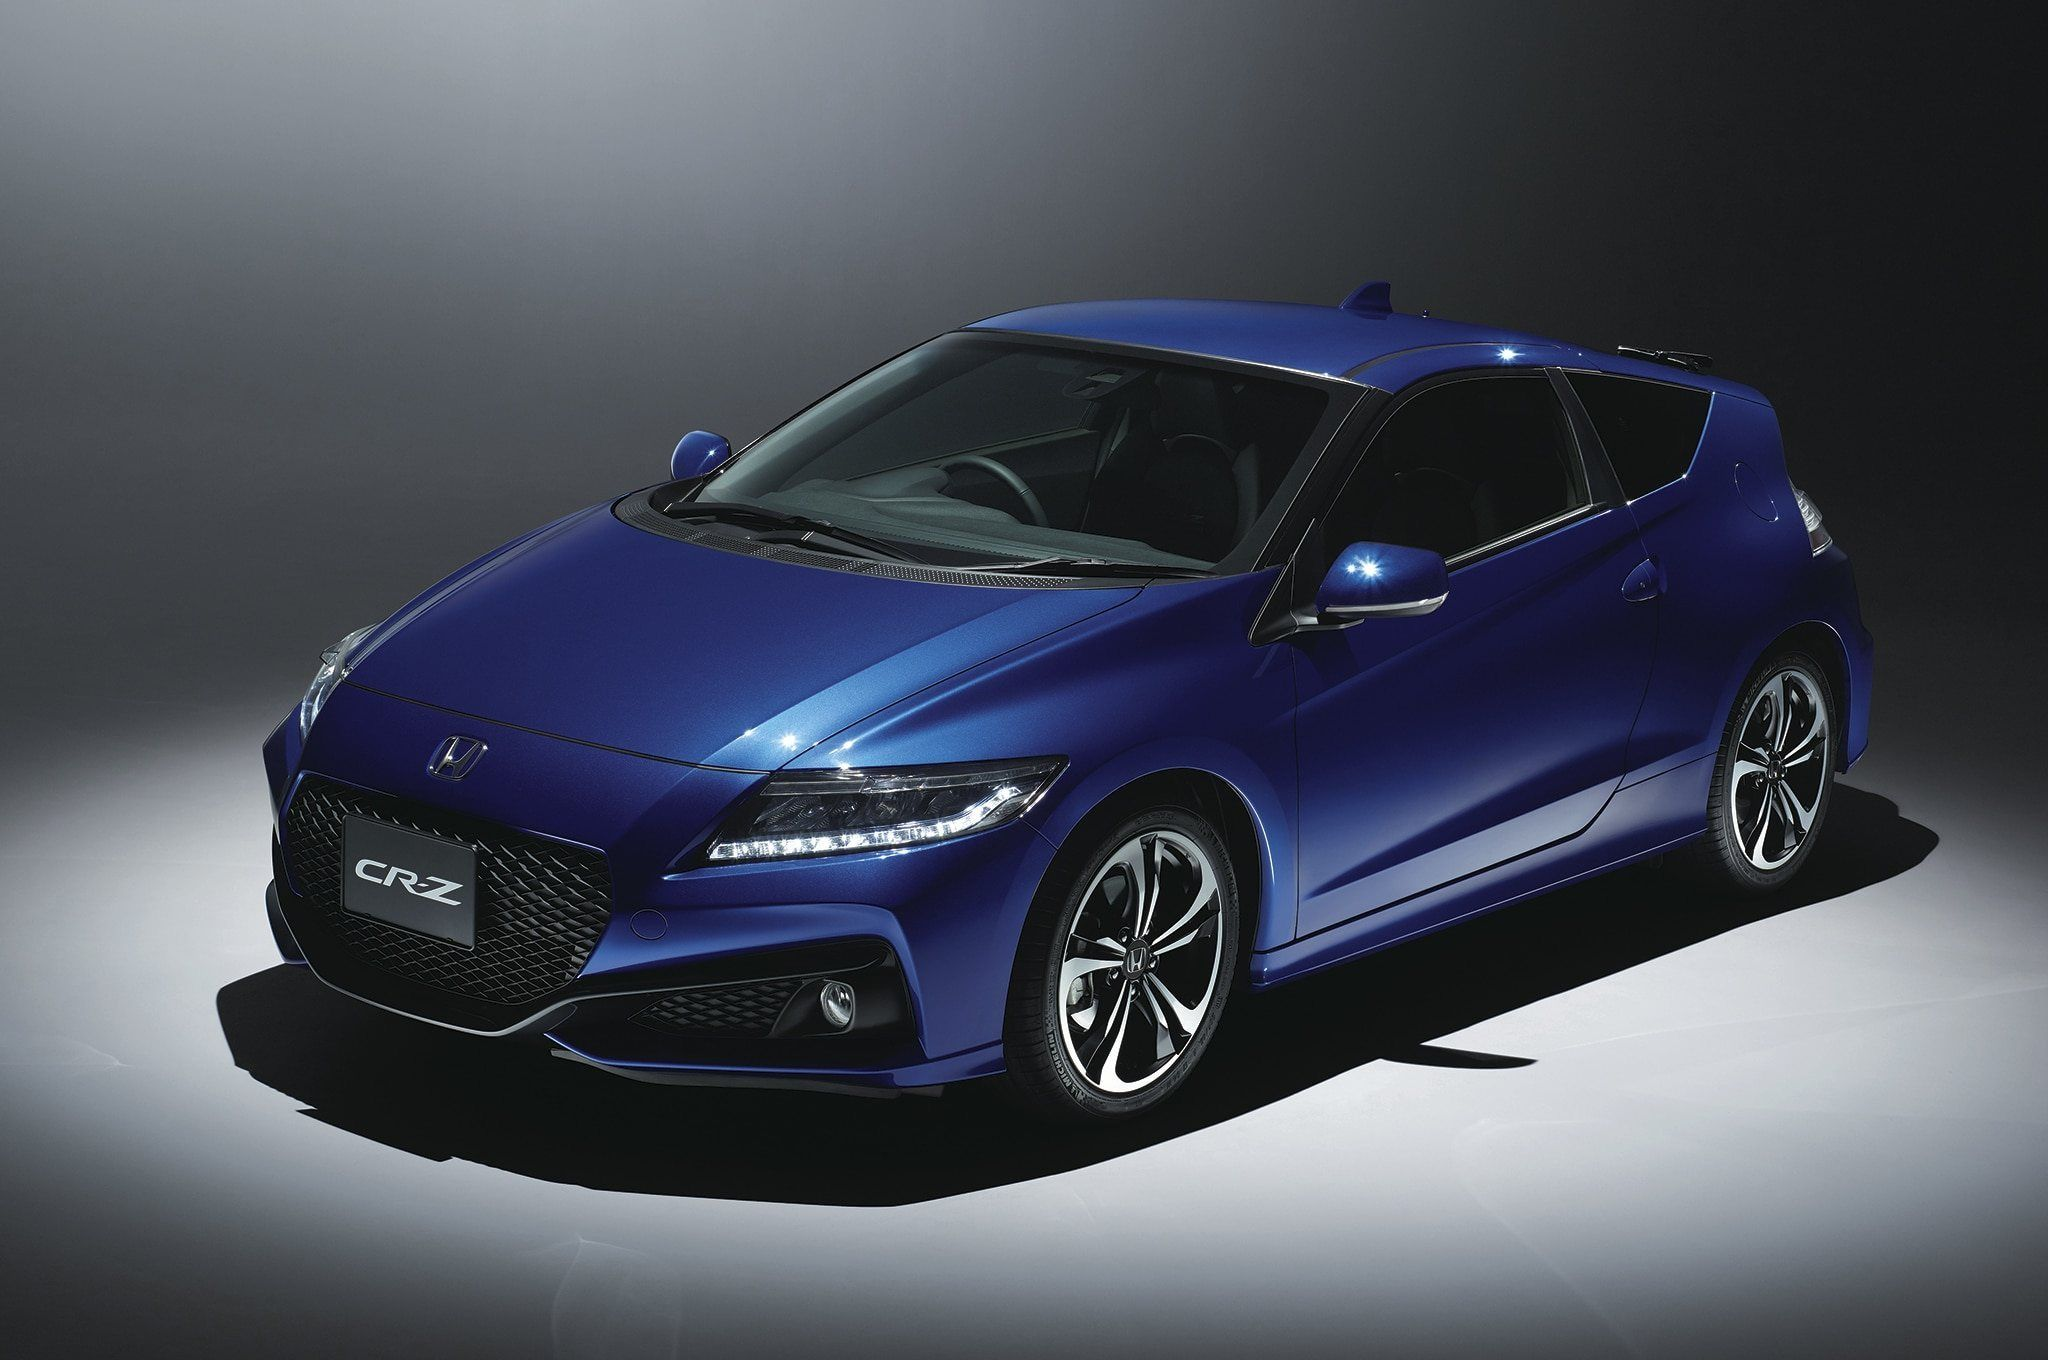 2021 Honda Crz Review and Release date